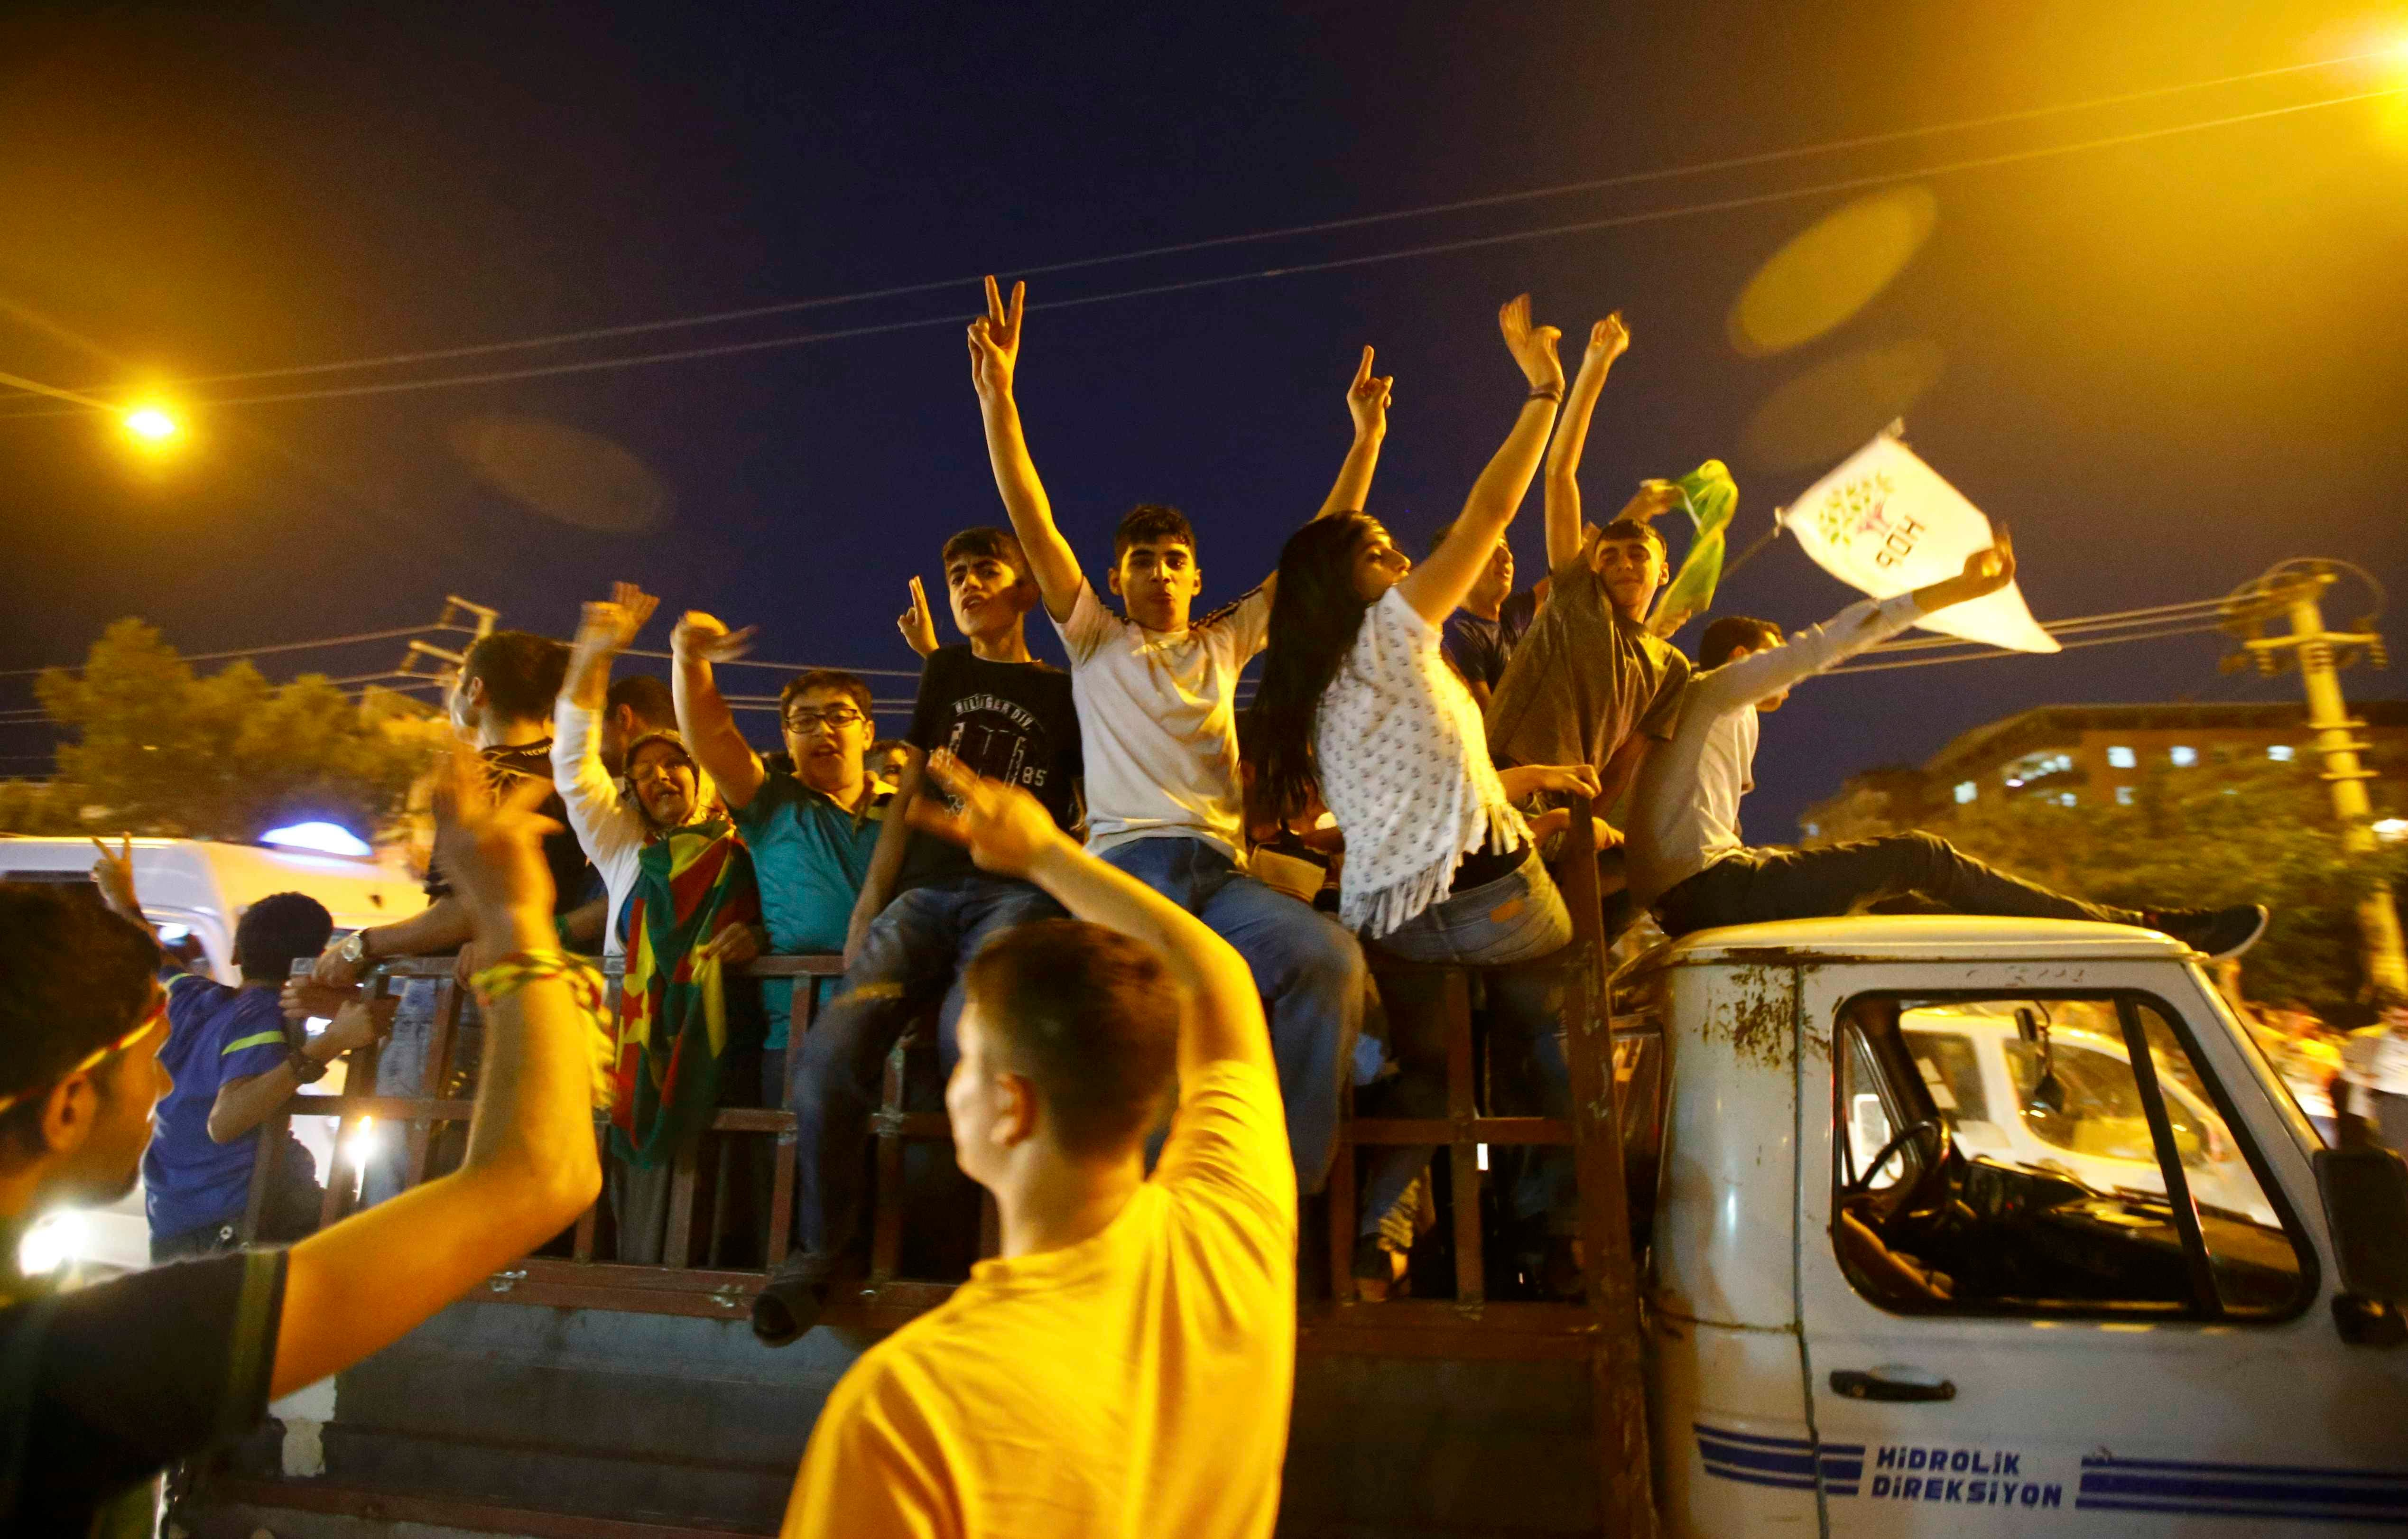 Supporters of the pro-Kurdish Peoples' Democratic Party (HDP) ride on a truck as they celebrate along a street after the parliamentary election in Diyarbakir, Turkey, June 7, 2015. (Reuters)